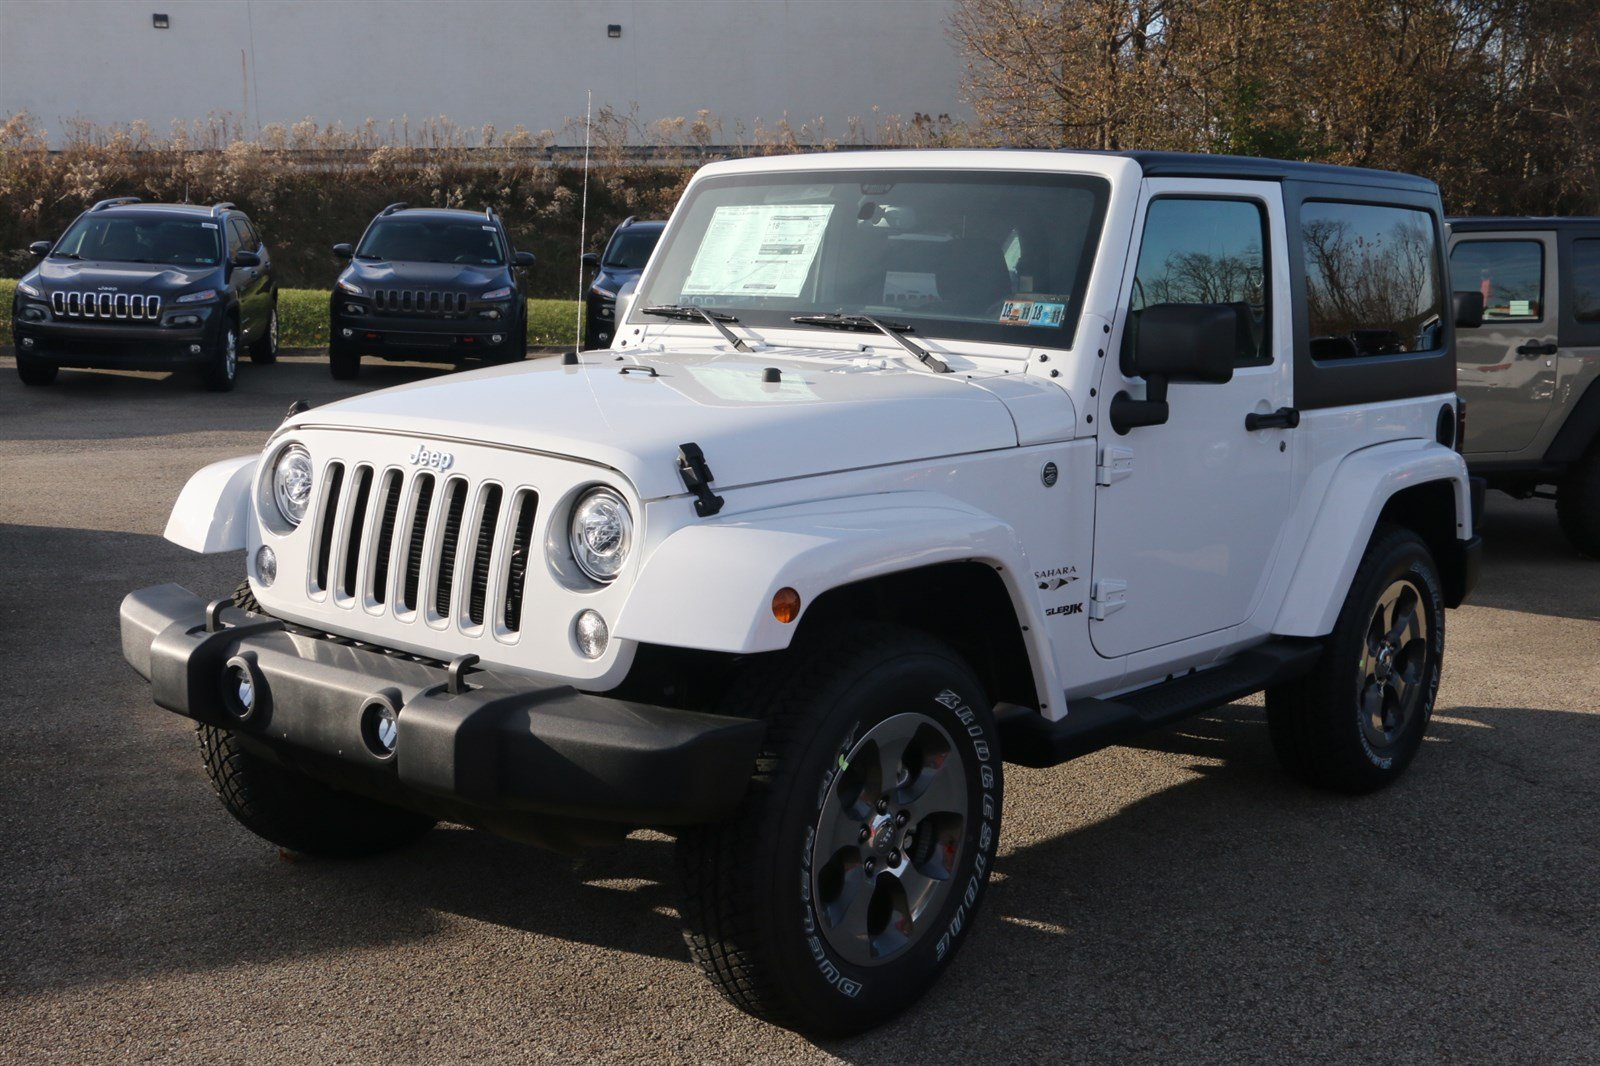 Jeep Wrangler Lease Price >> New 2018 Jeep Wrangler JK Sahara Sport Utility in Greensburg #J21832 | Hillview Motors